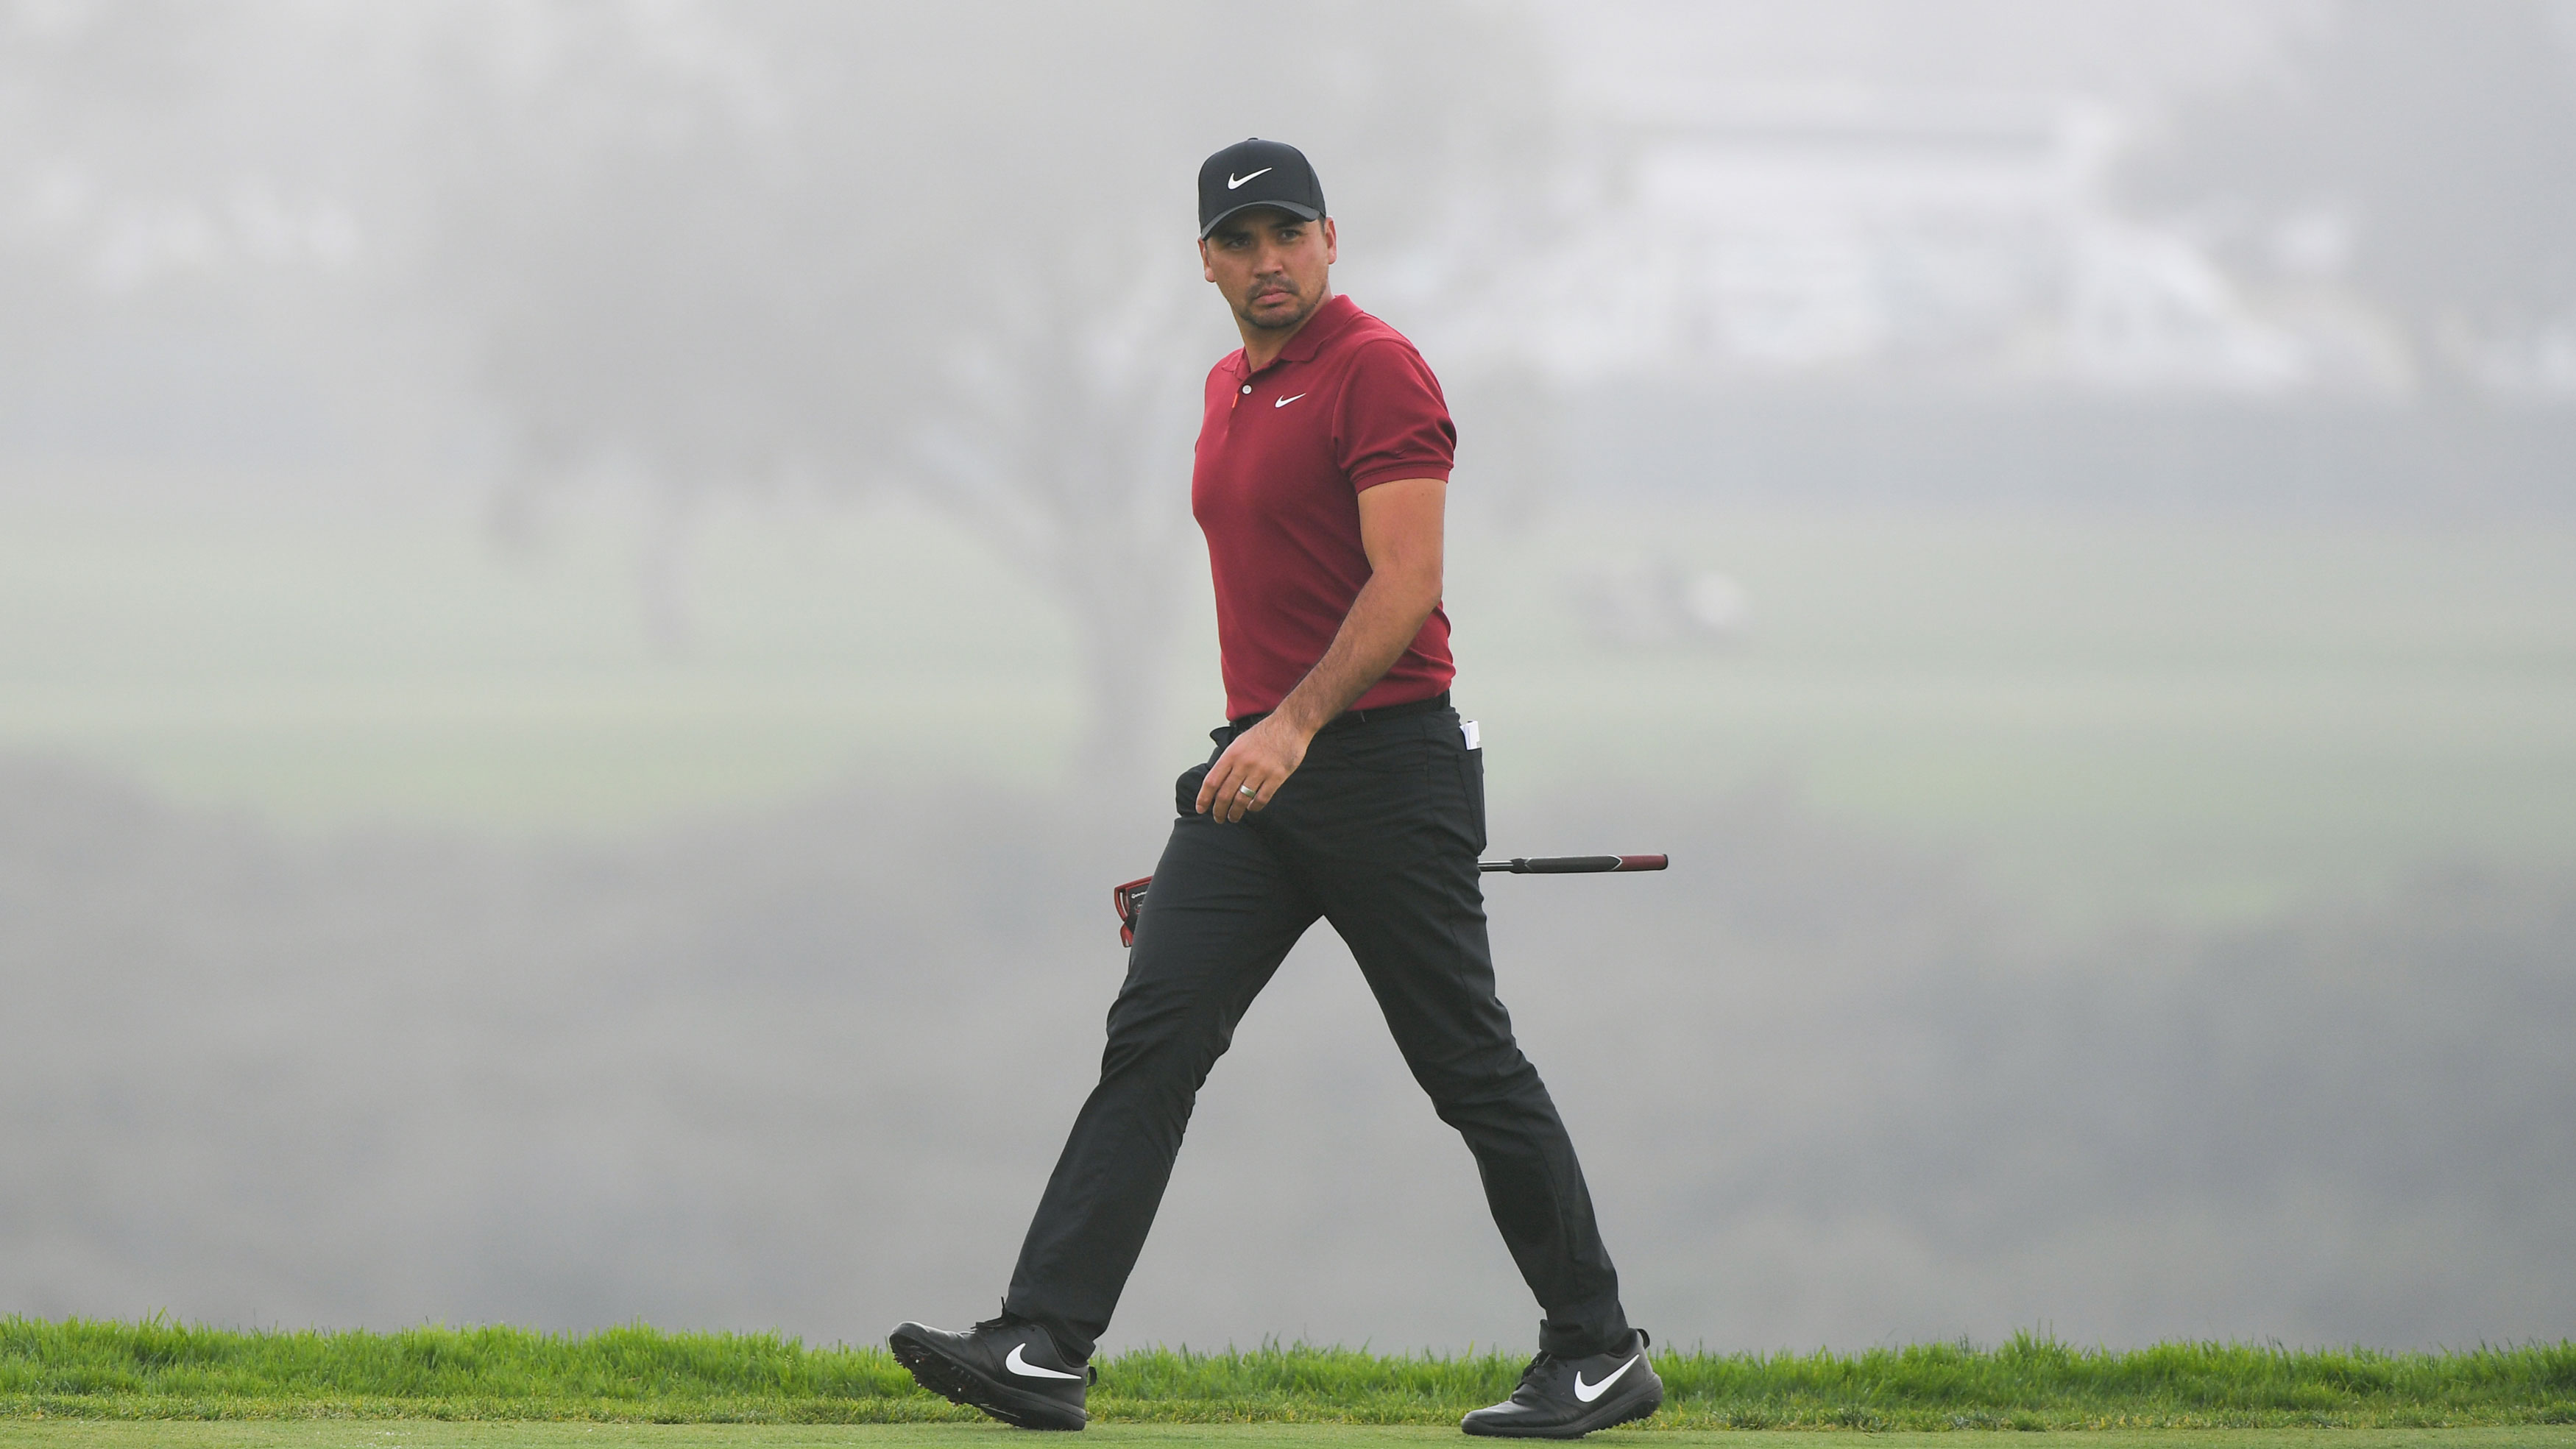 PGA Championship 2020: Jason Day reflects on his lone major five years ago, and whether his game can reach that level again | Golf World | Golf Digest